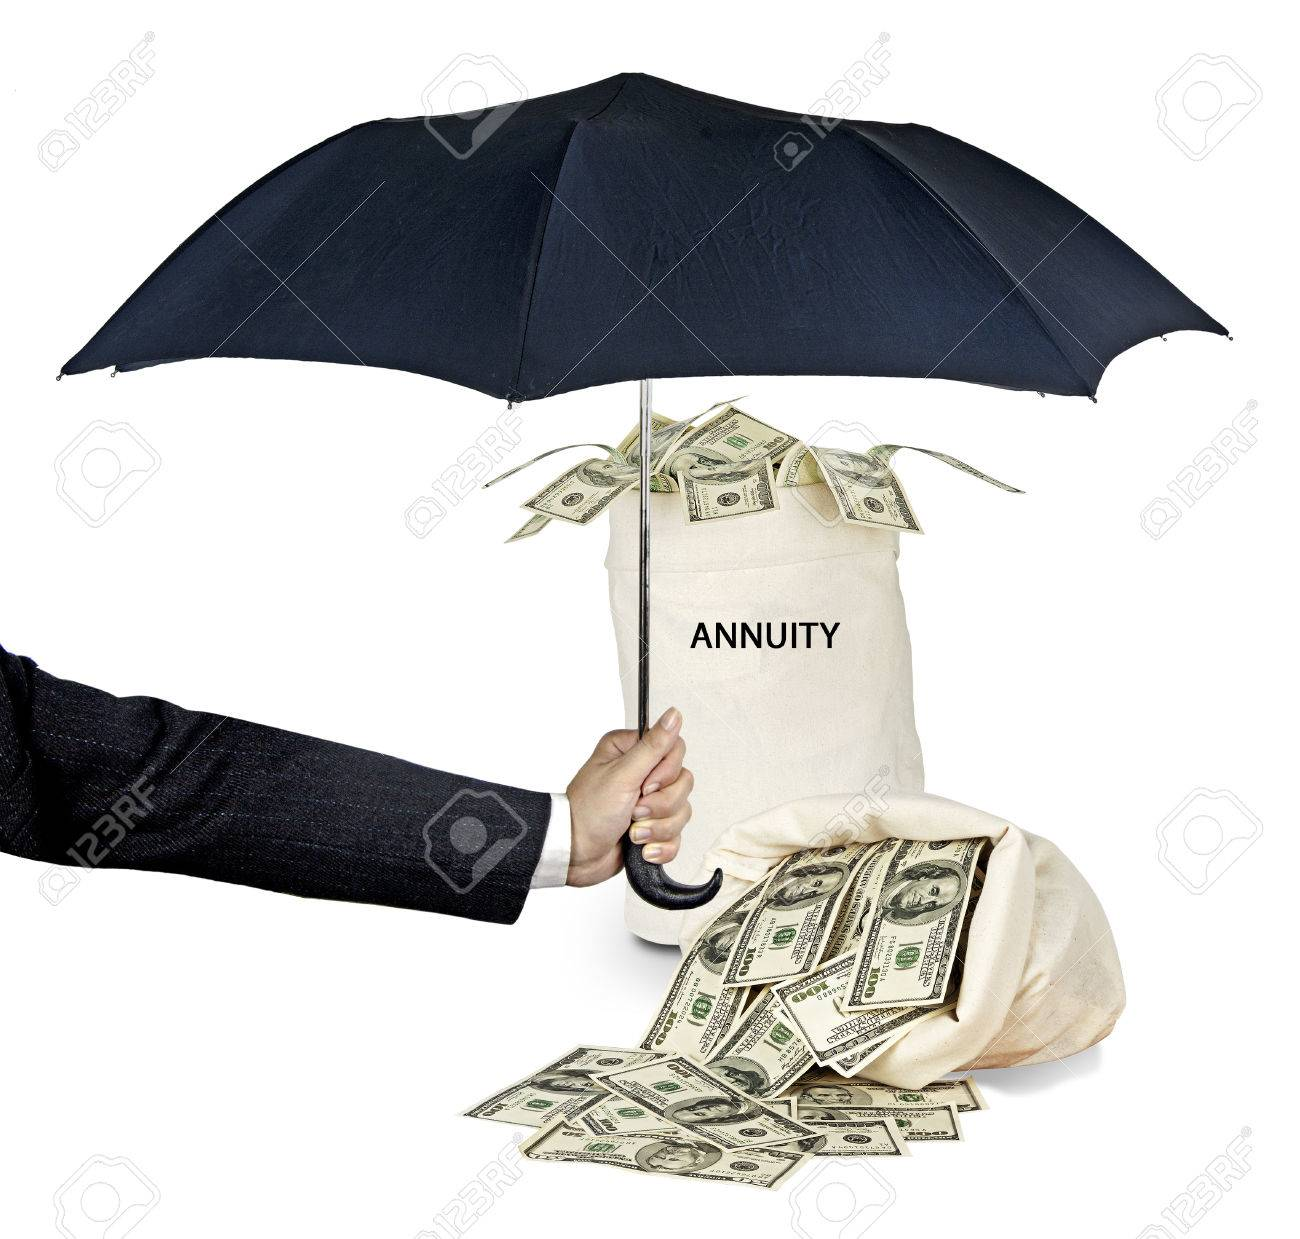 Bag with annuity Stock Photo - 38566886